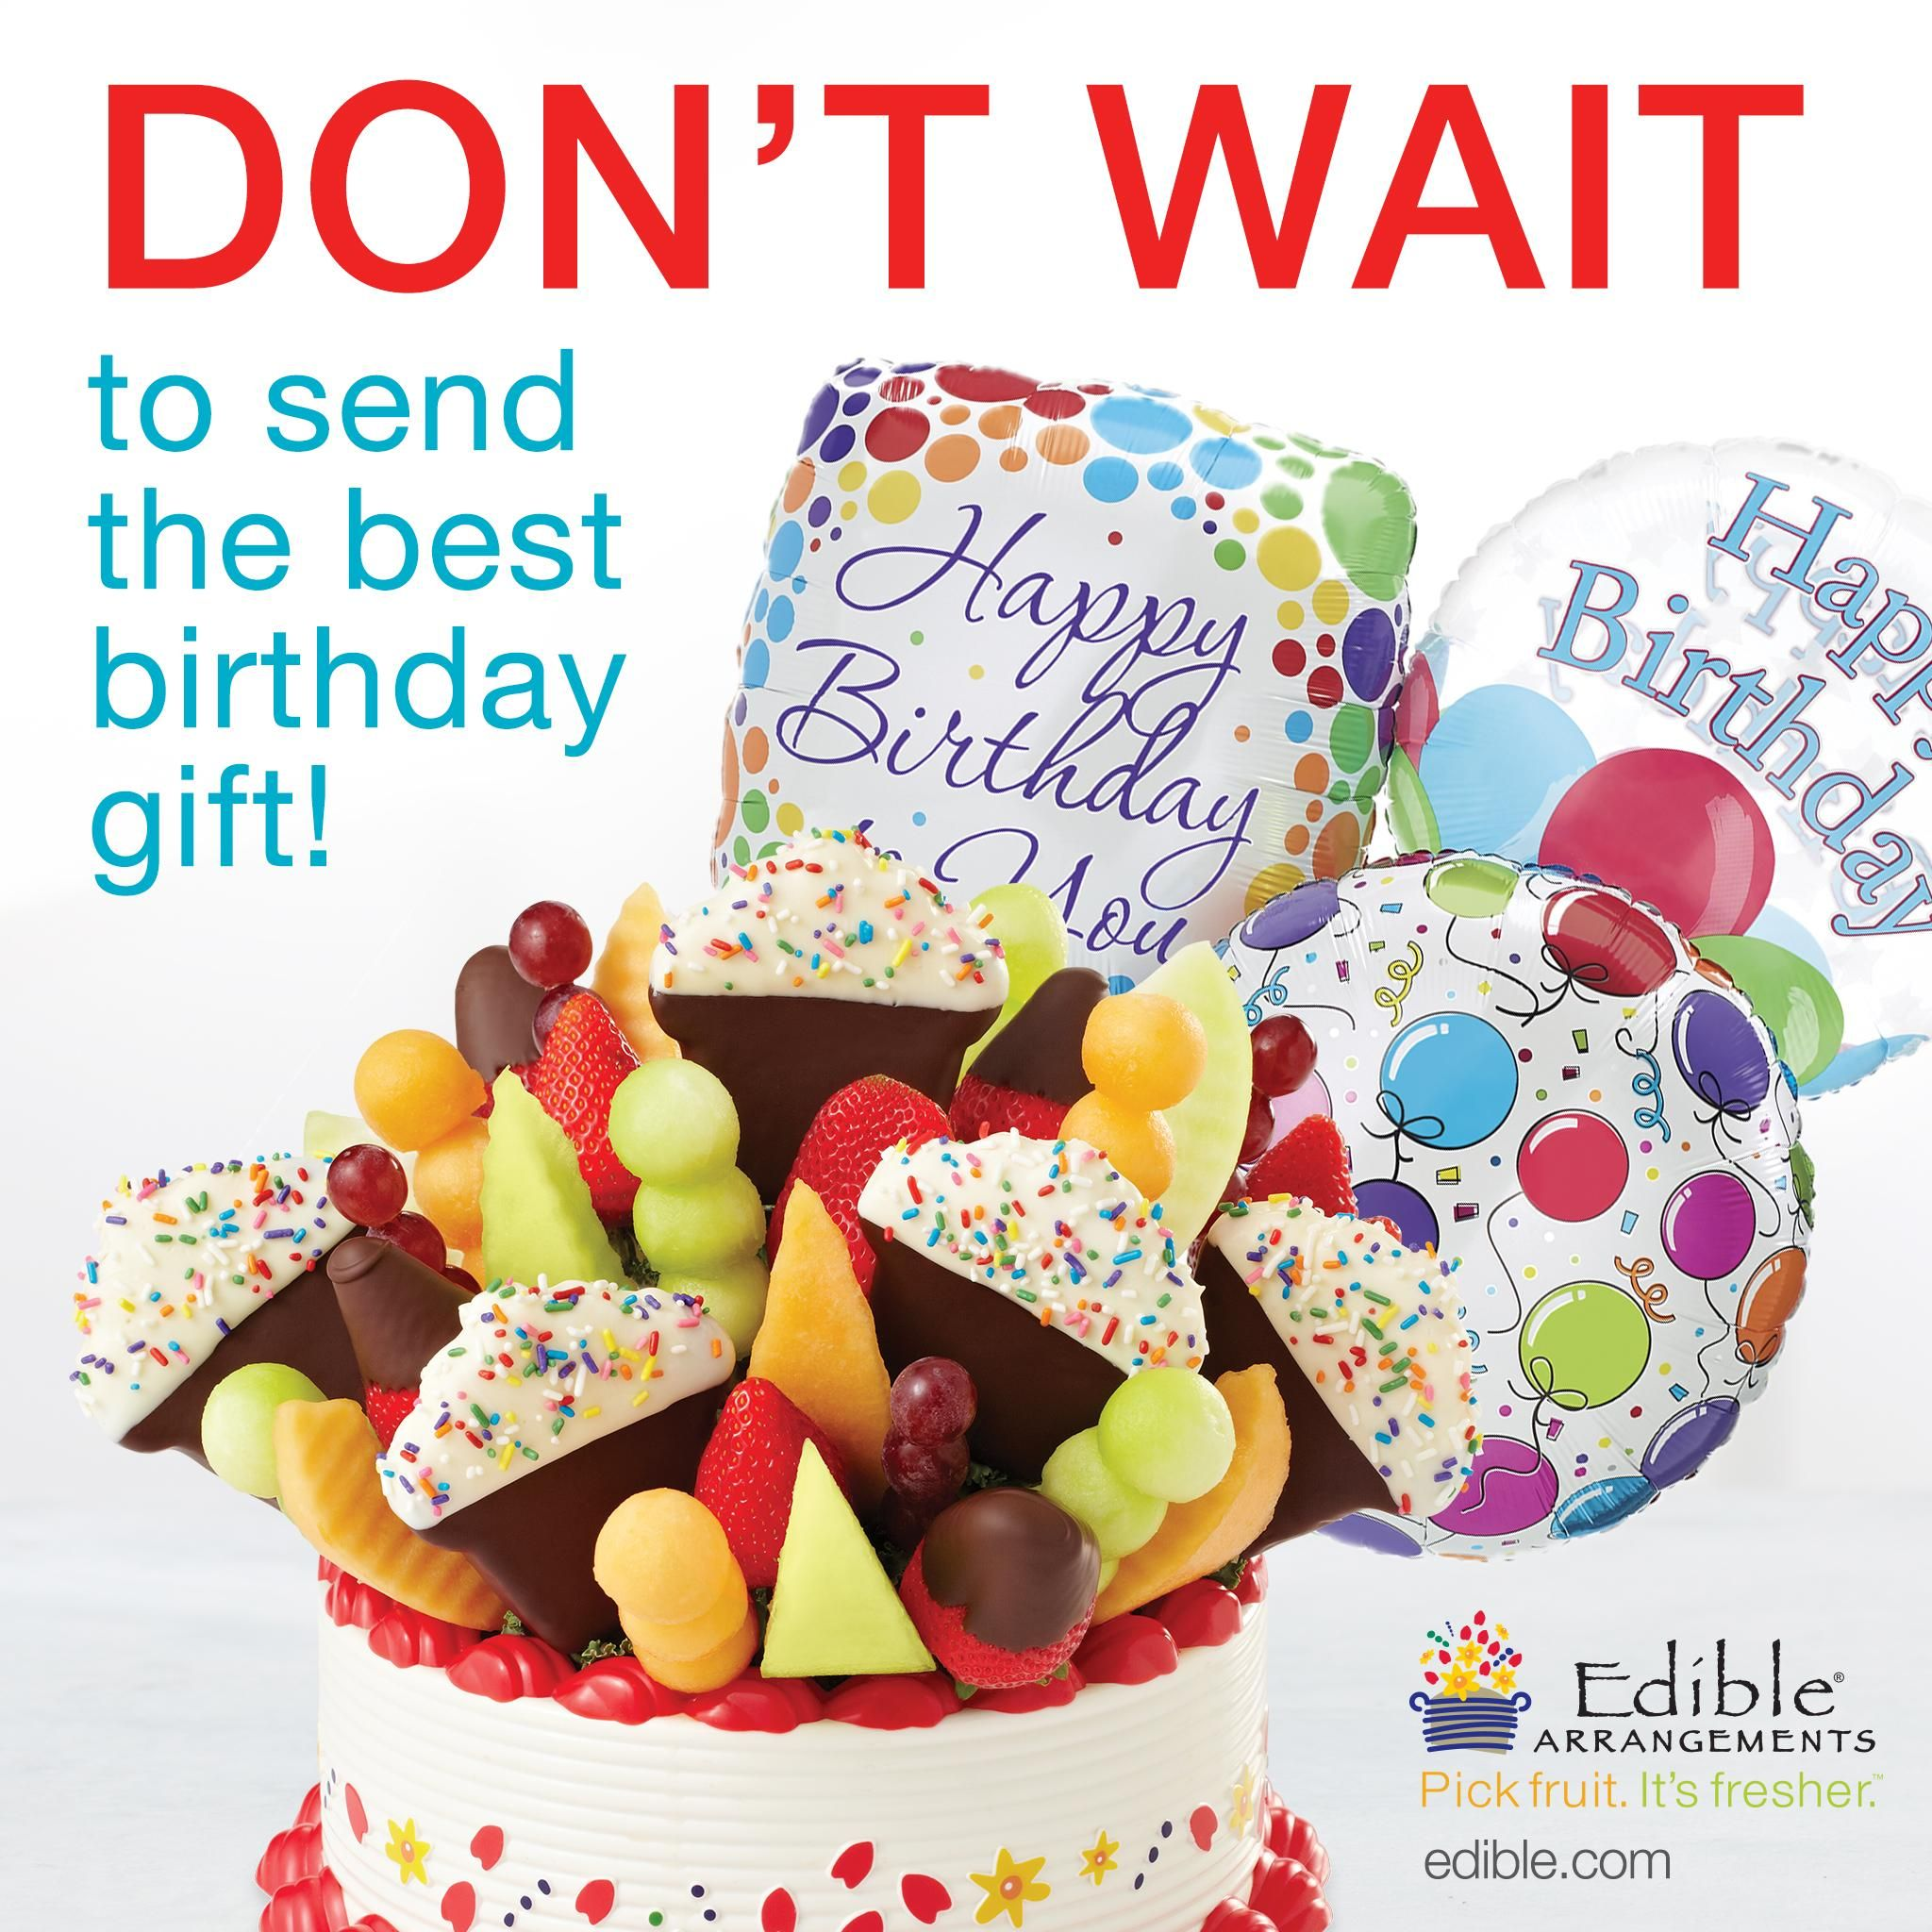 At EdibleArrangements We Know Birthdays In Fact Consider Ourselves Birthday Experts Check Out Our Amazing Selection Of Gifts Made Fresh